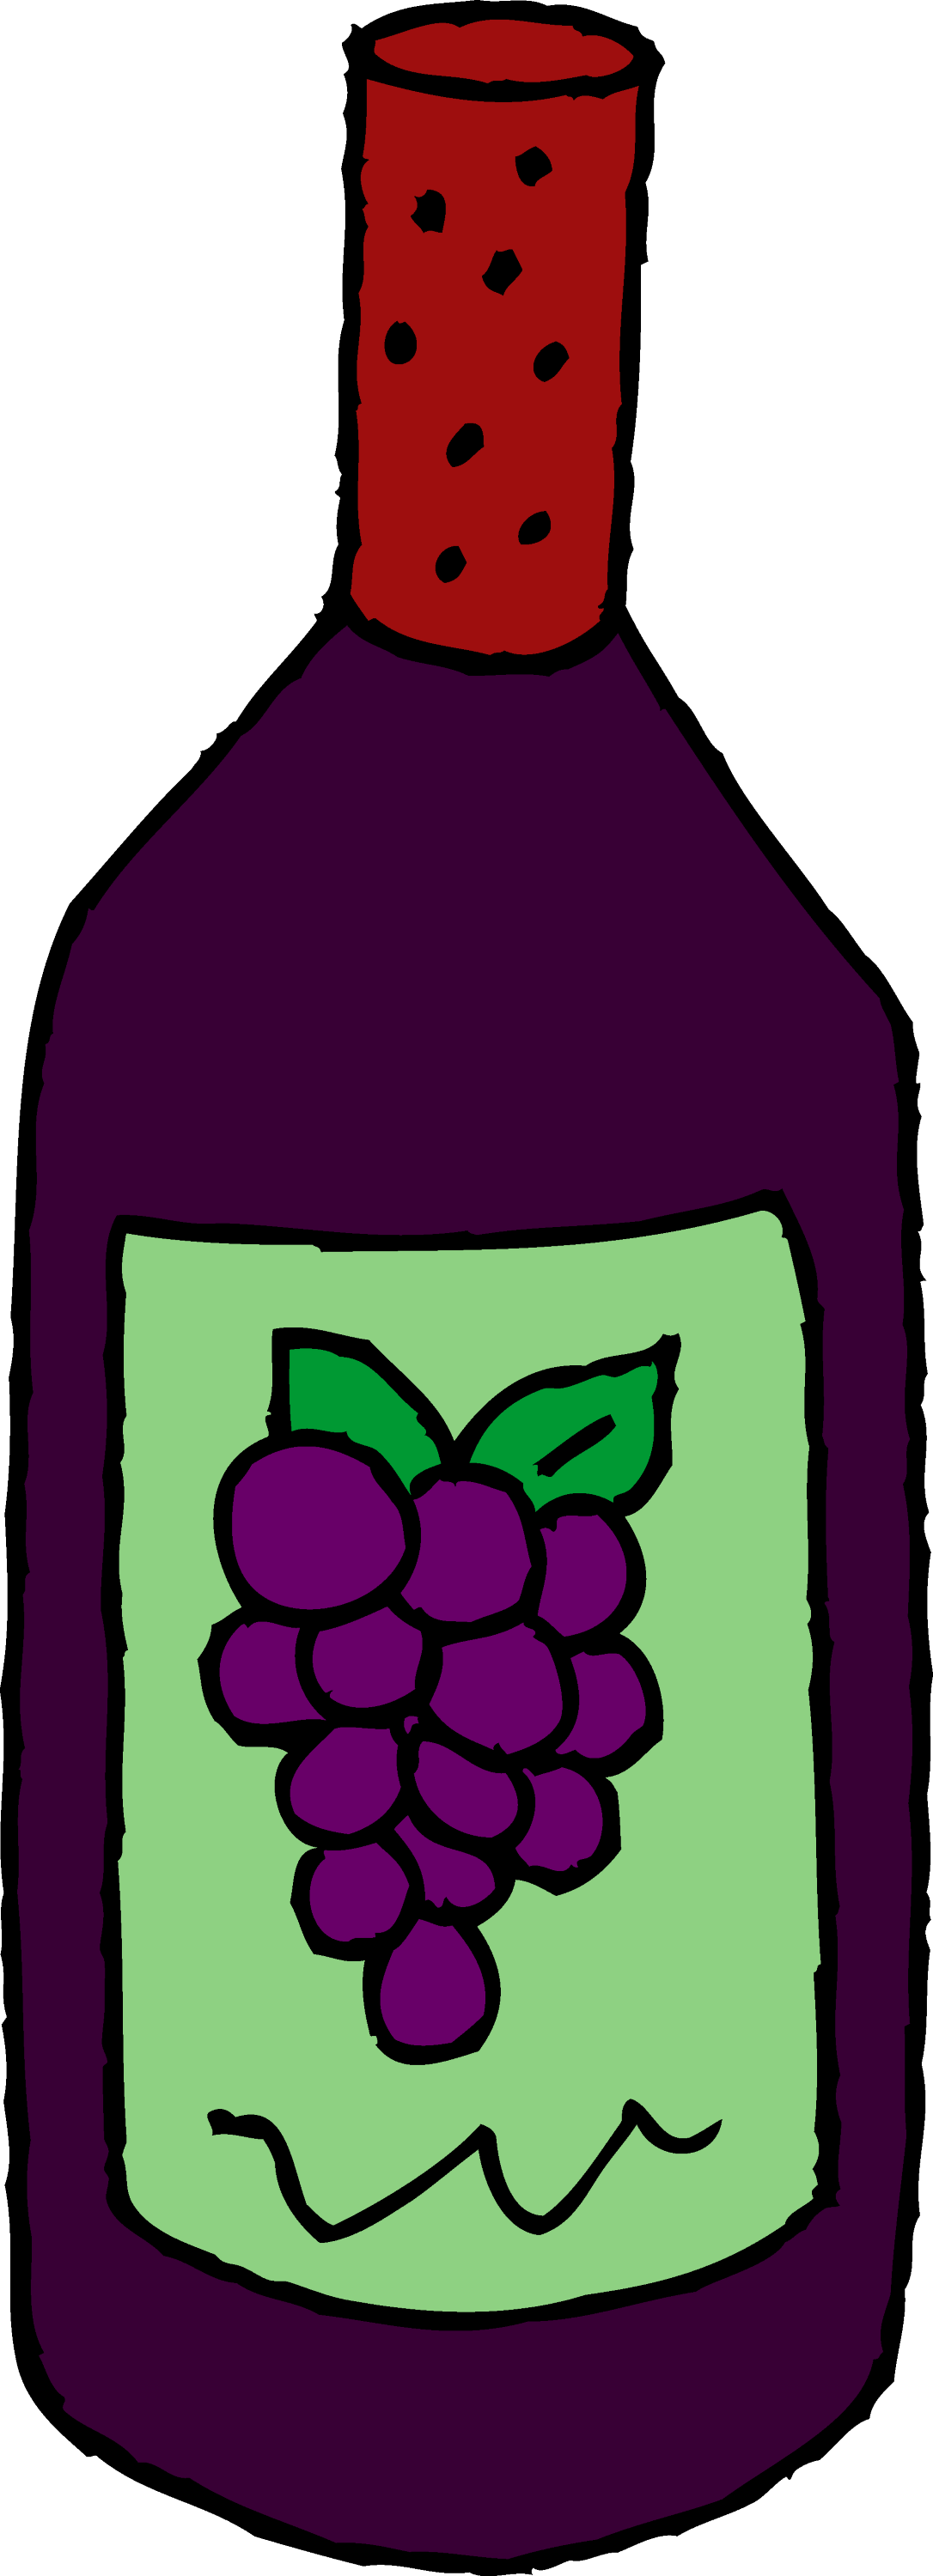 bottle of red wine clipart bottle red wine